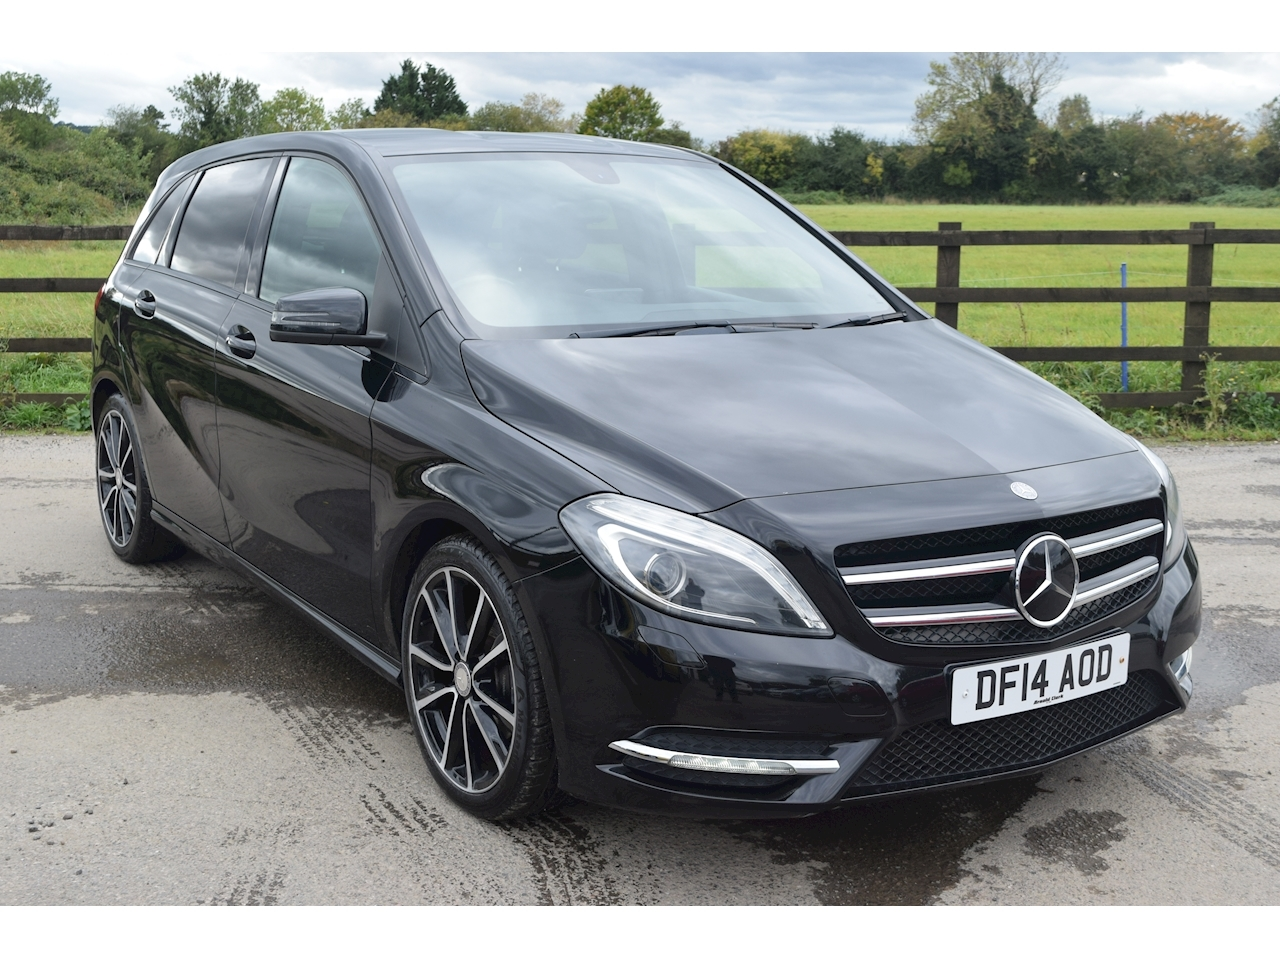 Mercedes-Benz B Class Sport 1.5 Manual Diesel 1.5 5dr Hatchback Manual Diesel